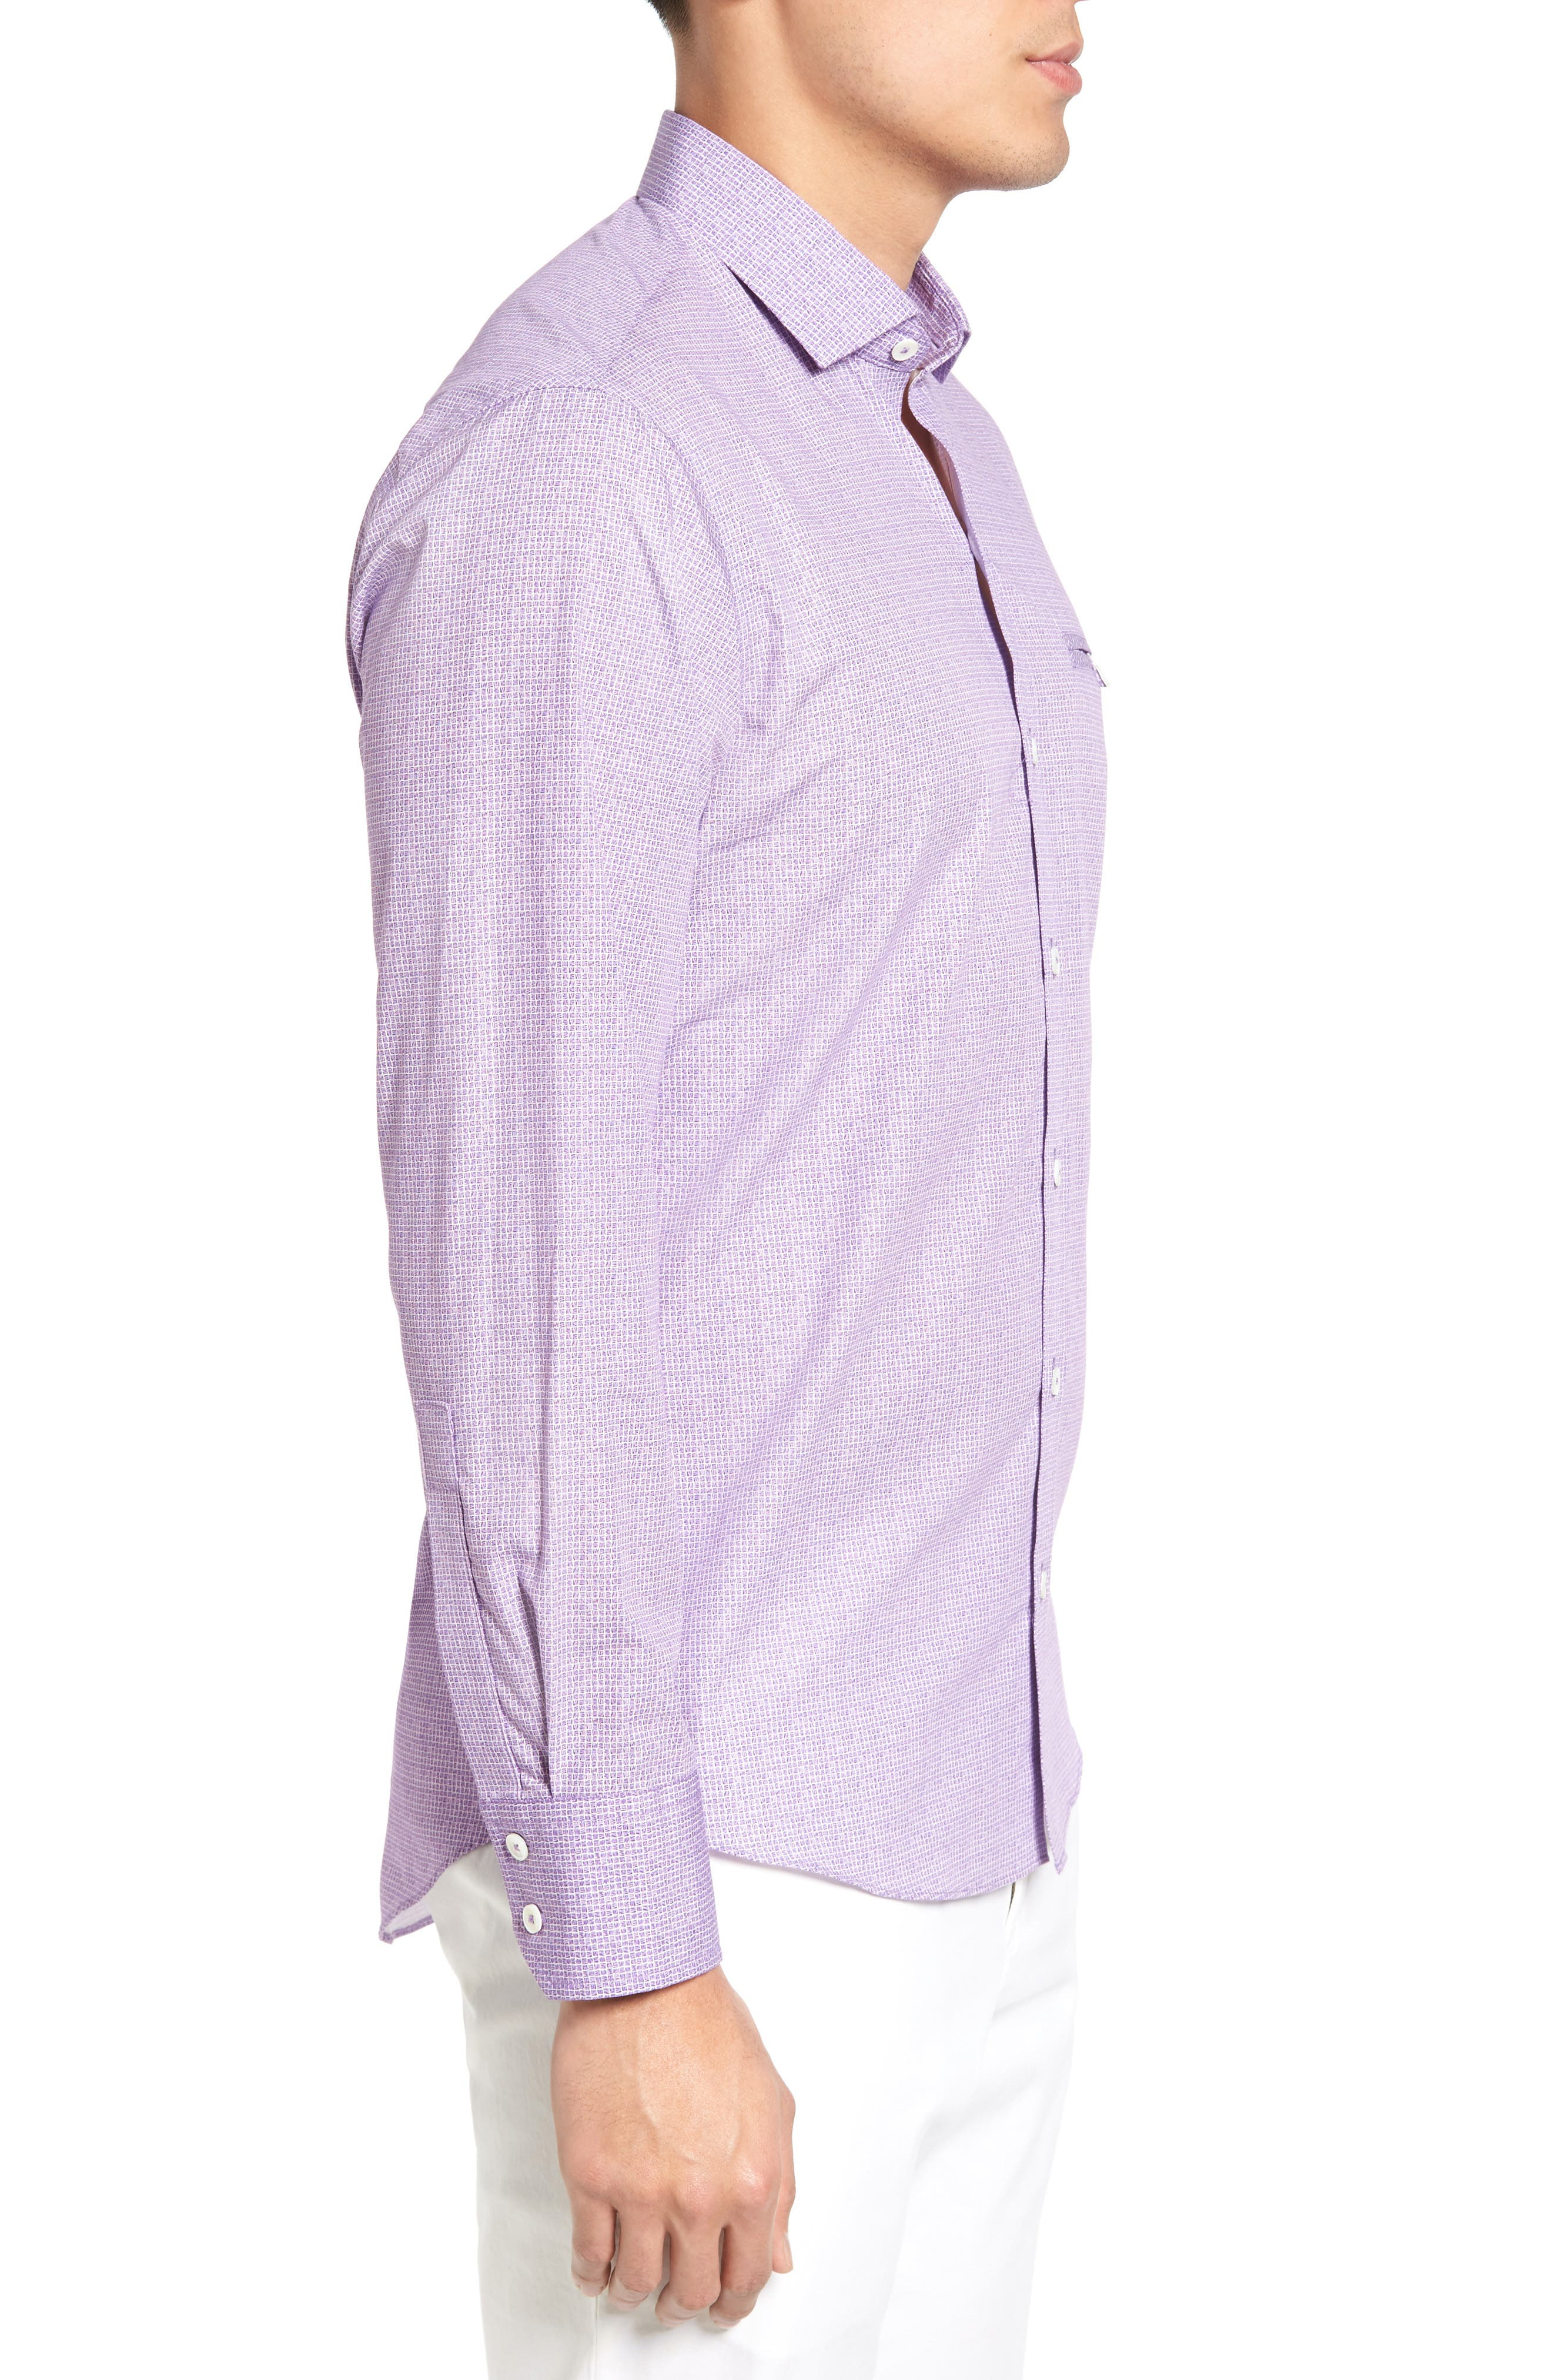 Alternate Image 3  - Zachary Prell McDesmond Trim Fit Print Sport Shirt